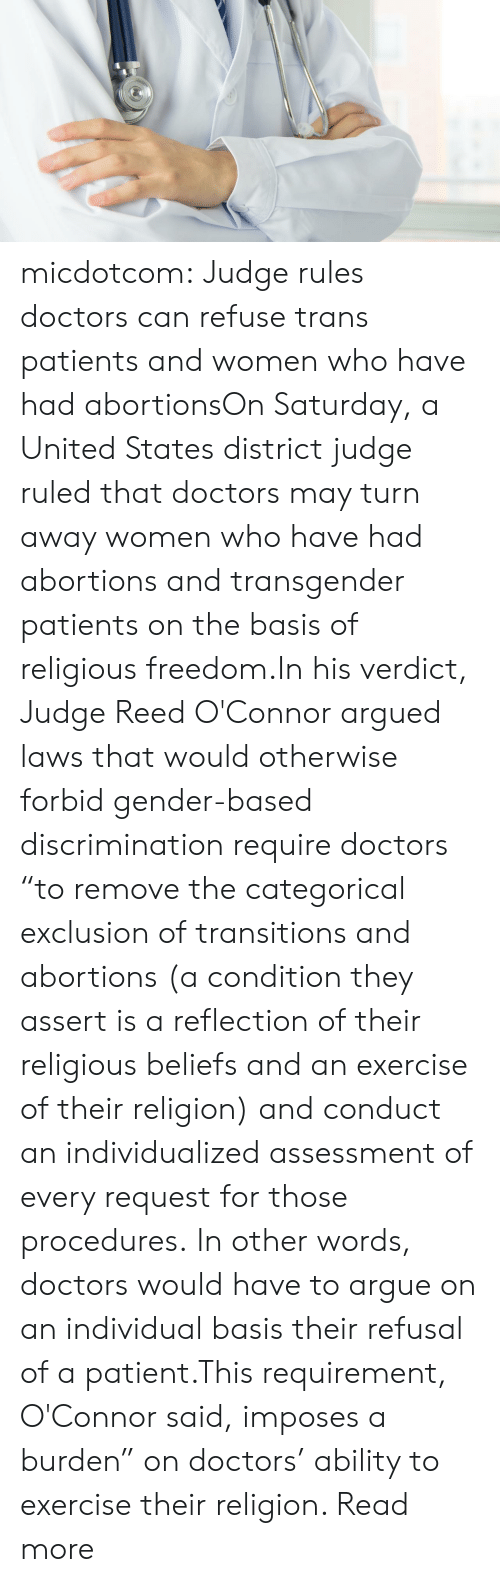 "Arguing, Target, and Transgender: micdotcom:  Judge rules doctors can refuse trans patients and women who have had abortionsOn Saturday, a United States district judge ruled that doctors may turn away women who have had abortions and transgender patients on the basis of religious freedom.In his verdict, Judge Reed O'Connor argued laws that would otherwise forbid gender-based discrimination require doctors ""to remove the categorical exclusion of transitions and abortions (a condition they assert is a reflection of their religious beliefs and an exercise of their religion) and conduct an individualized assessment of every request for those procedures. In other words, doctors would have to argue on an individual basis their refusal of a patient.This requirement, O'Connor said, imposes a burden"" on doctors' ability to exercise their religion. Read more"